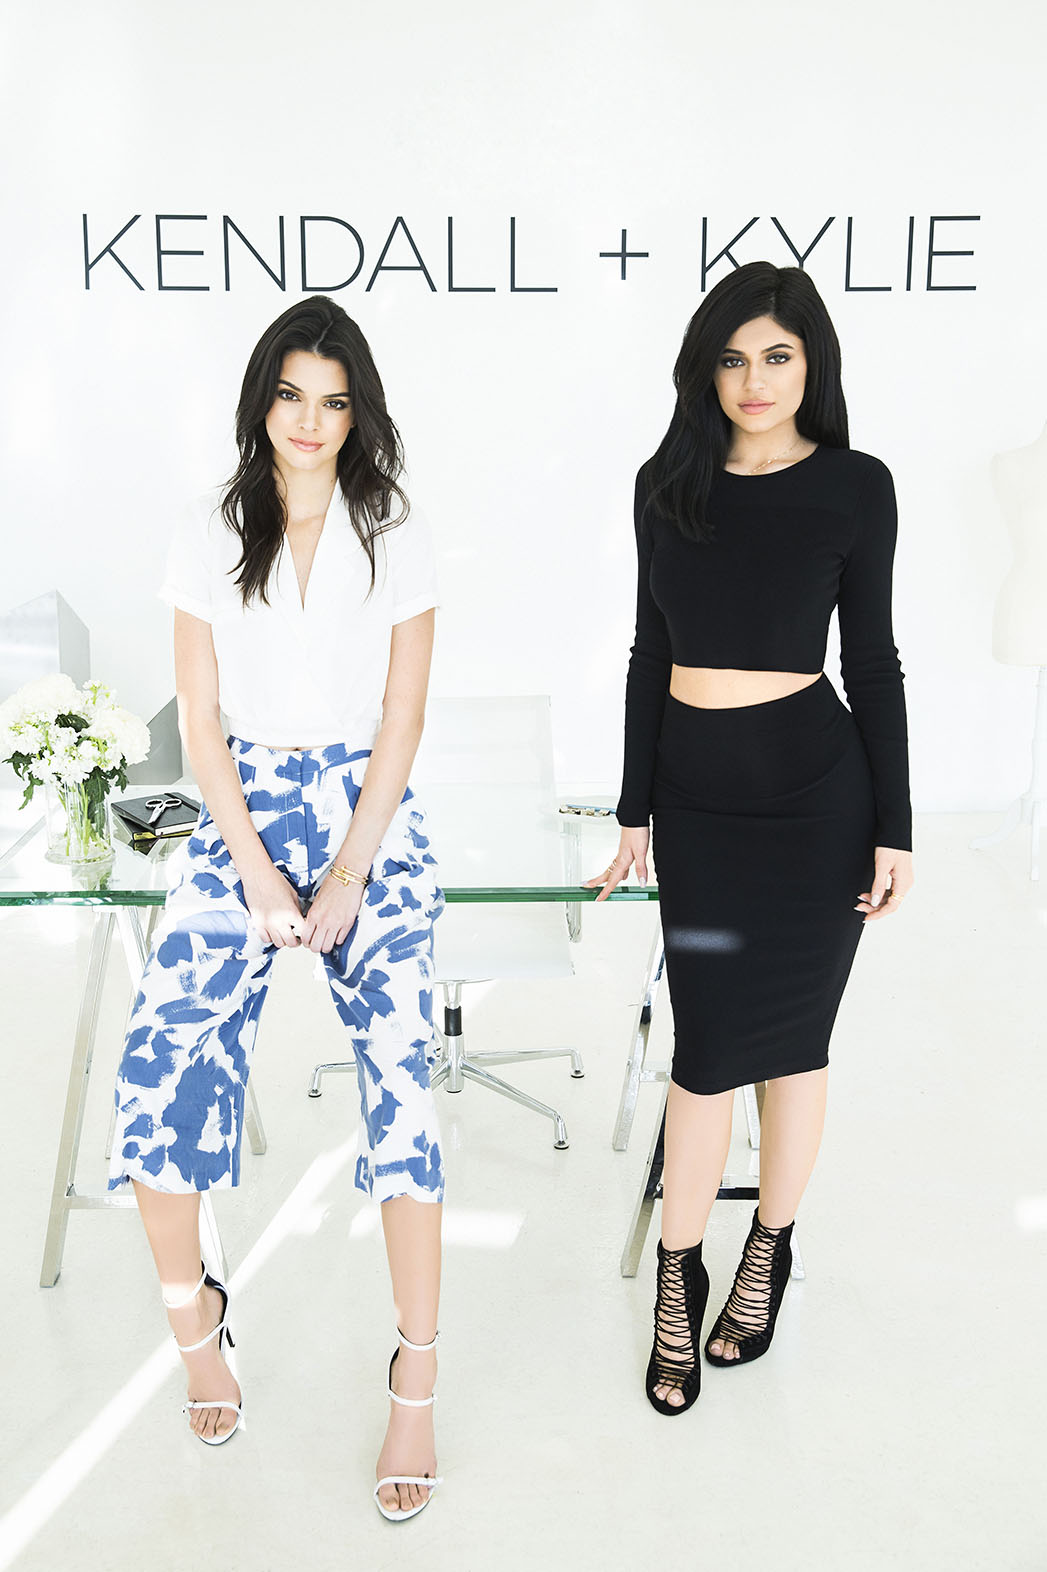 kendall and kylie - P 2016.jpg